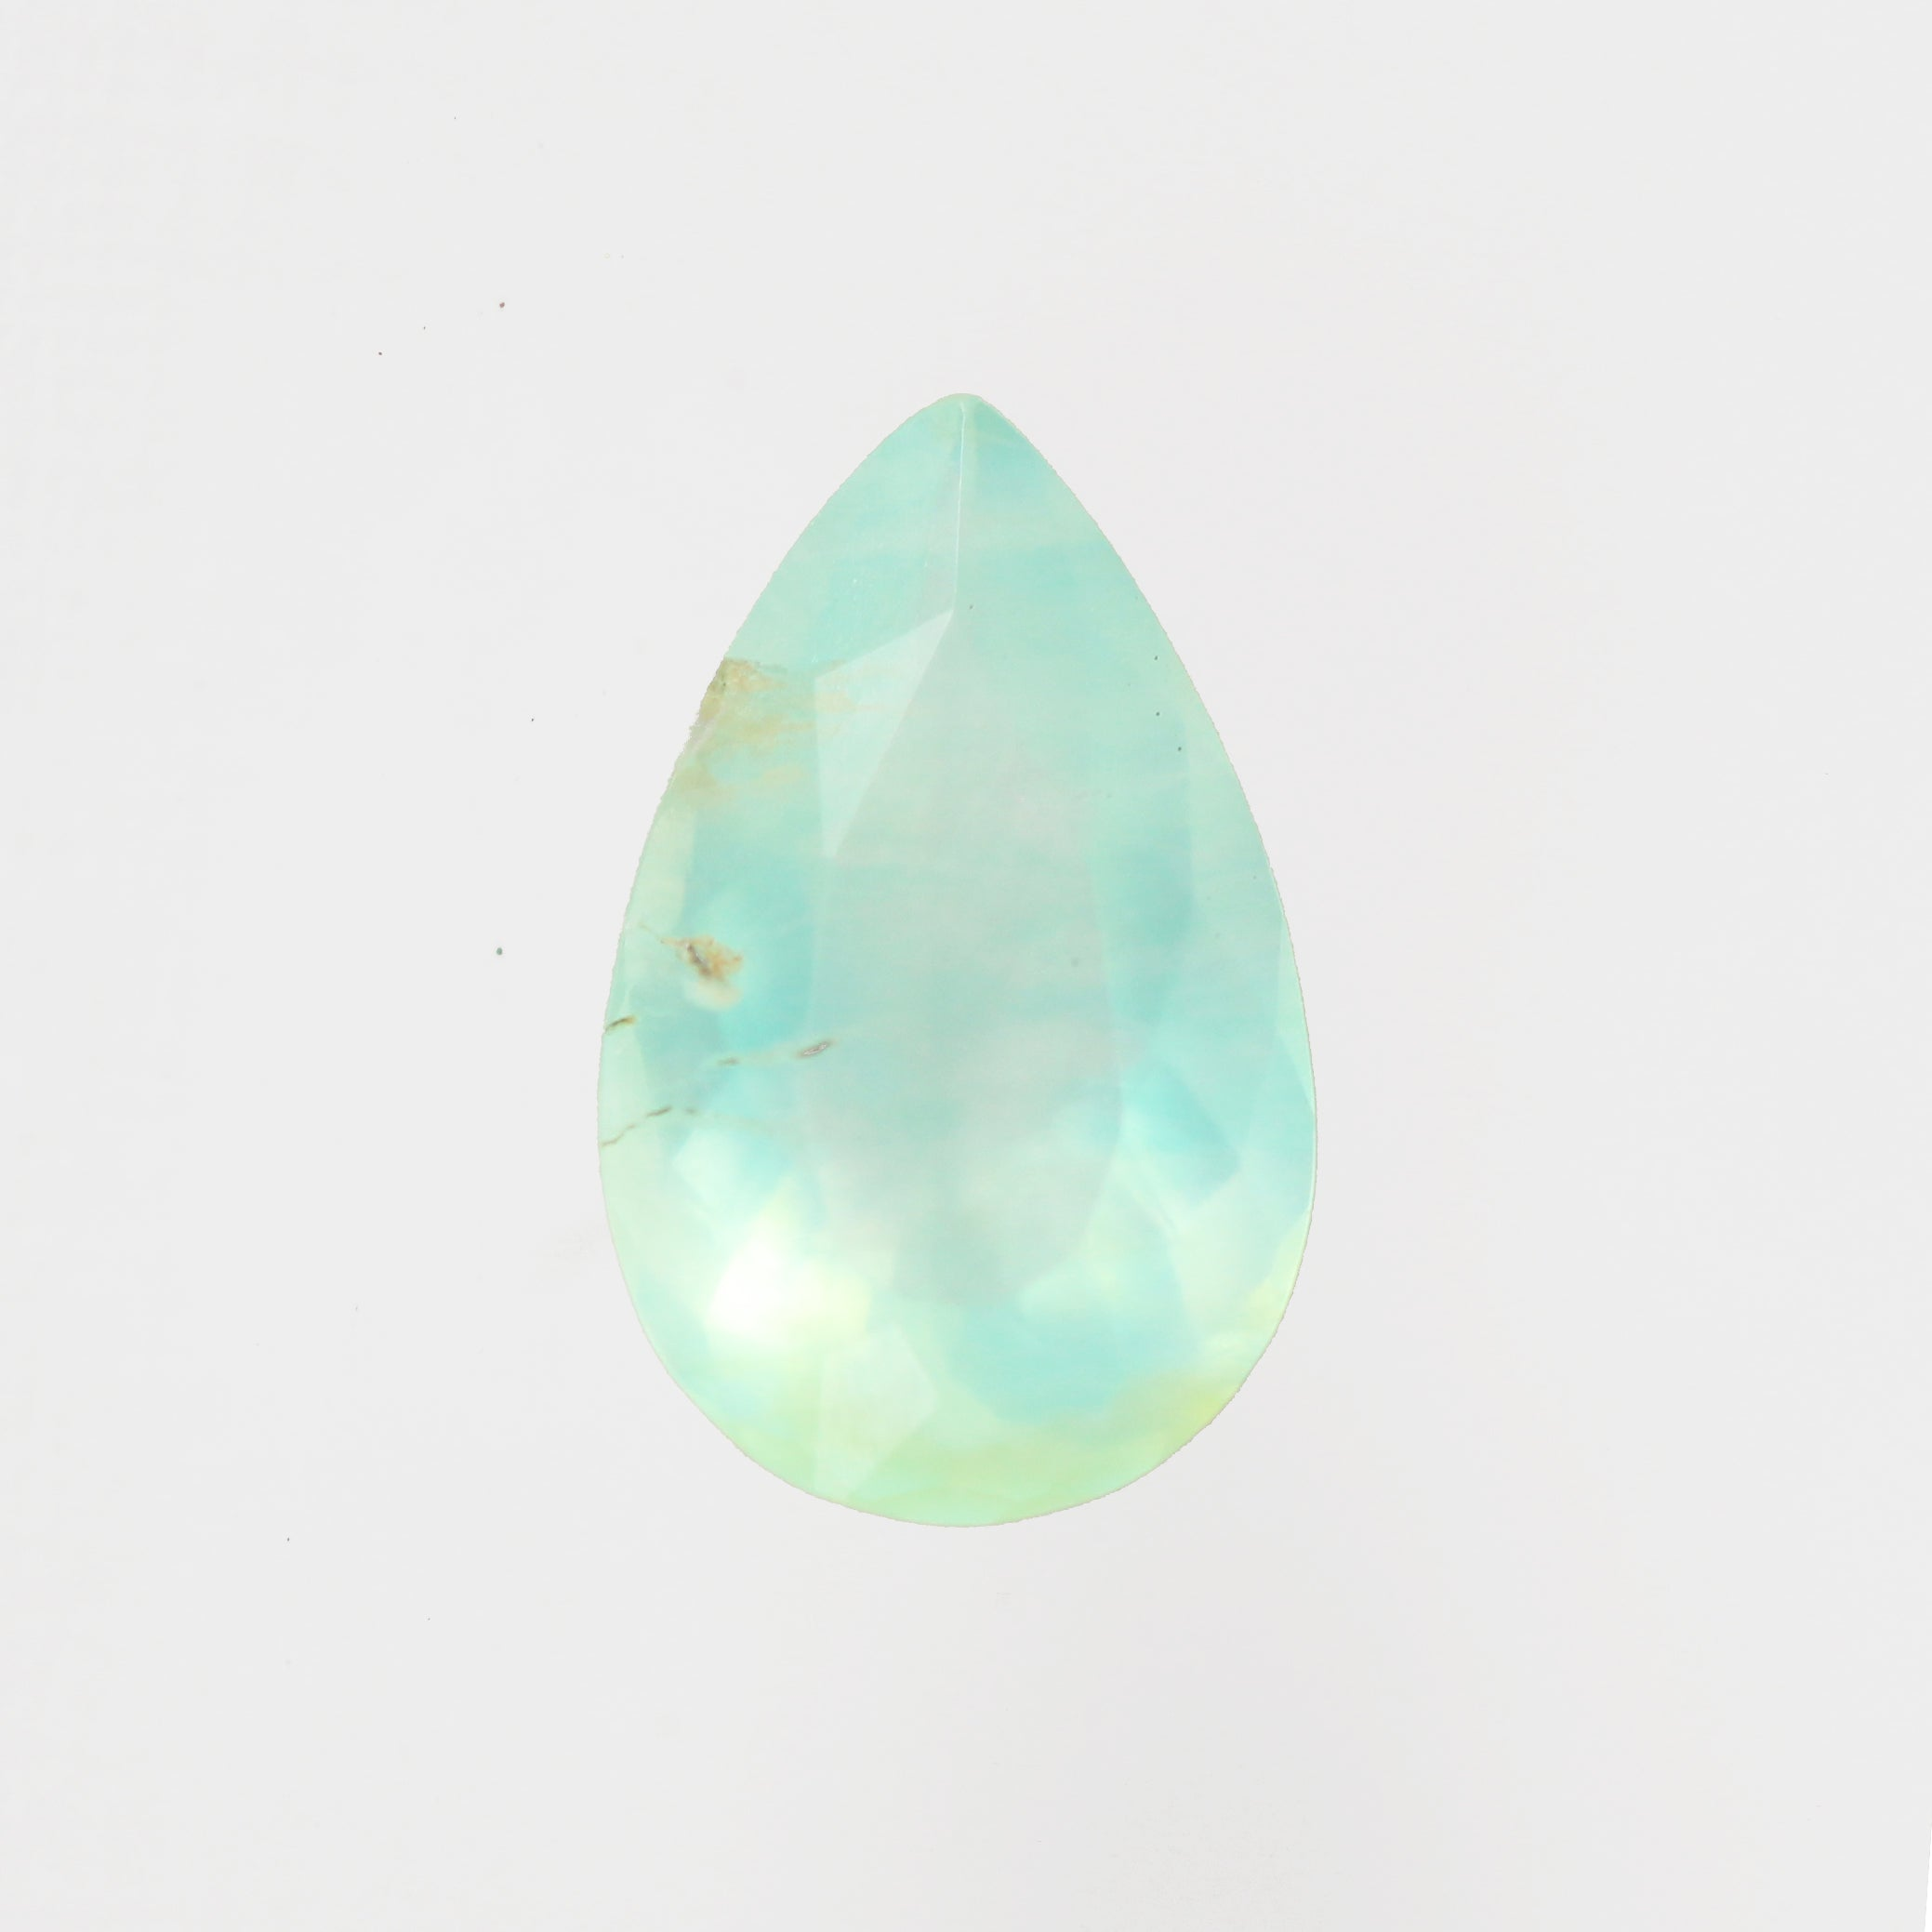 1.81 carat Peruvian Opal for Custom Work - Inventory Code PO181 - Salt & Pepper Celestial Diamond Engagement Rings and Wedding Bands  by Midwinter Co.